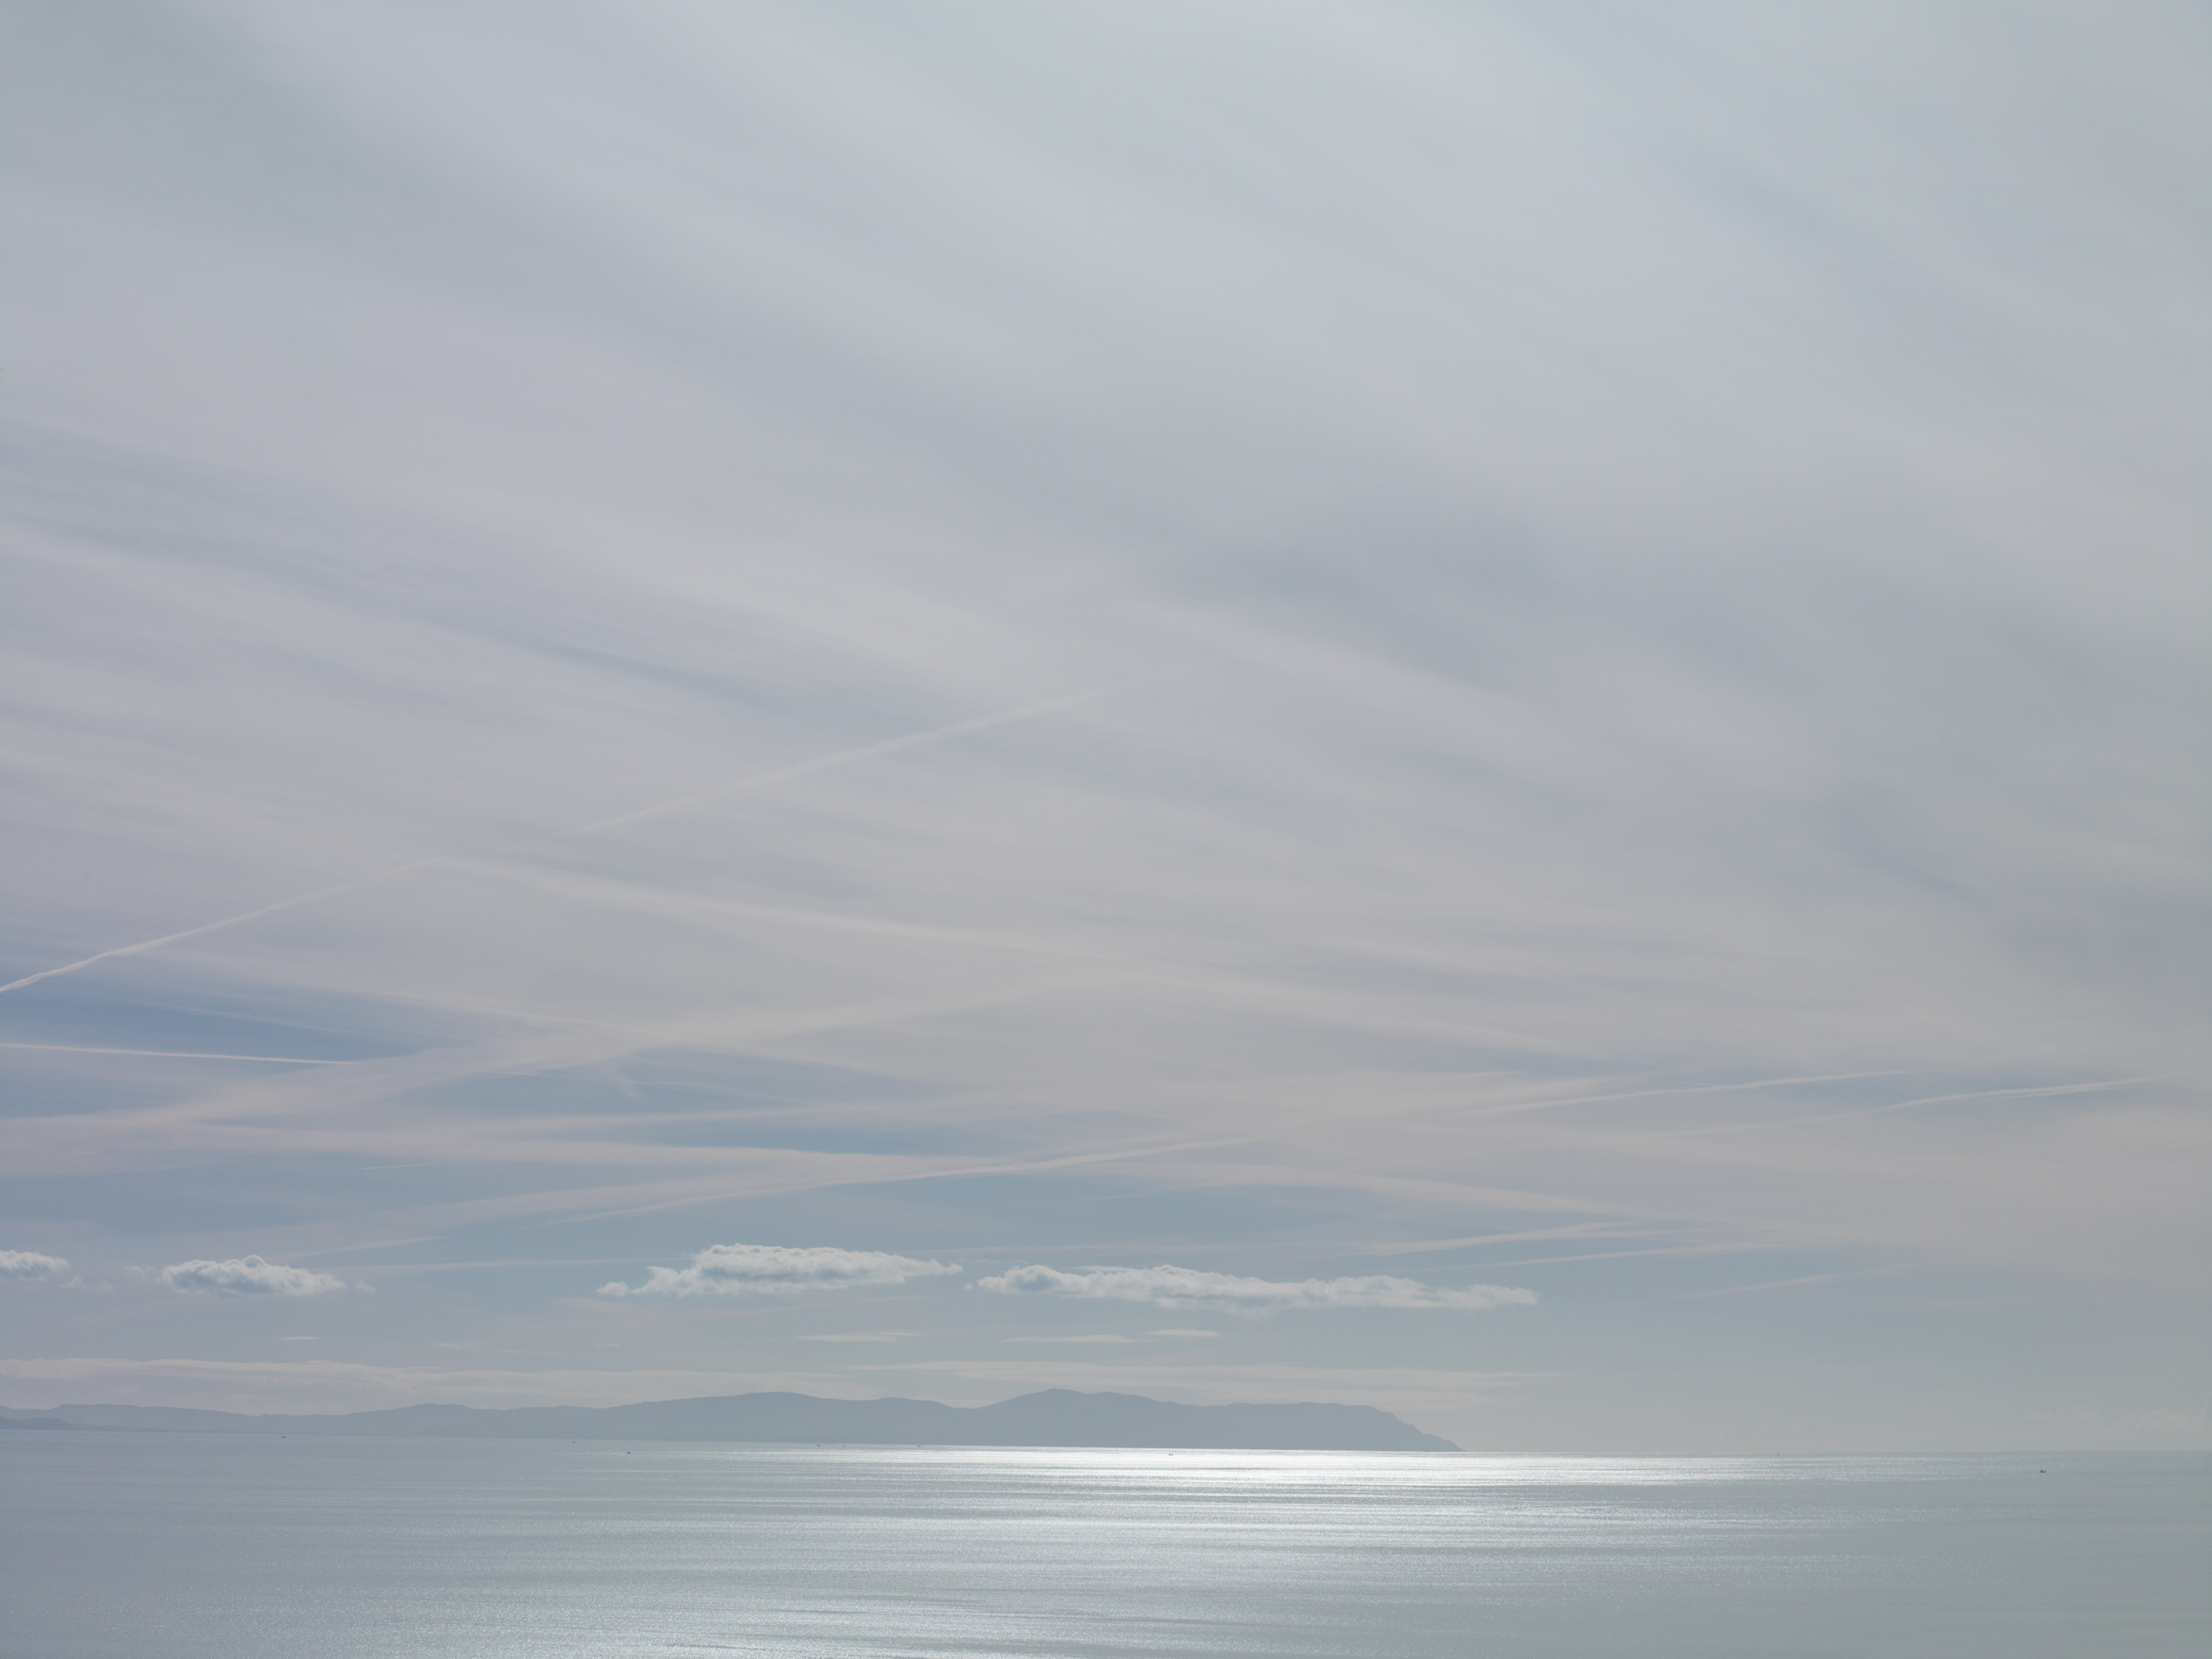 Jon Wyatt Photography - seascape of the Sound of Jura looking towards the Scottish mainland